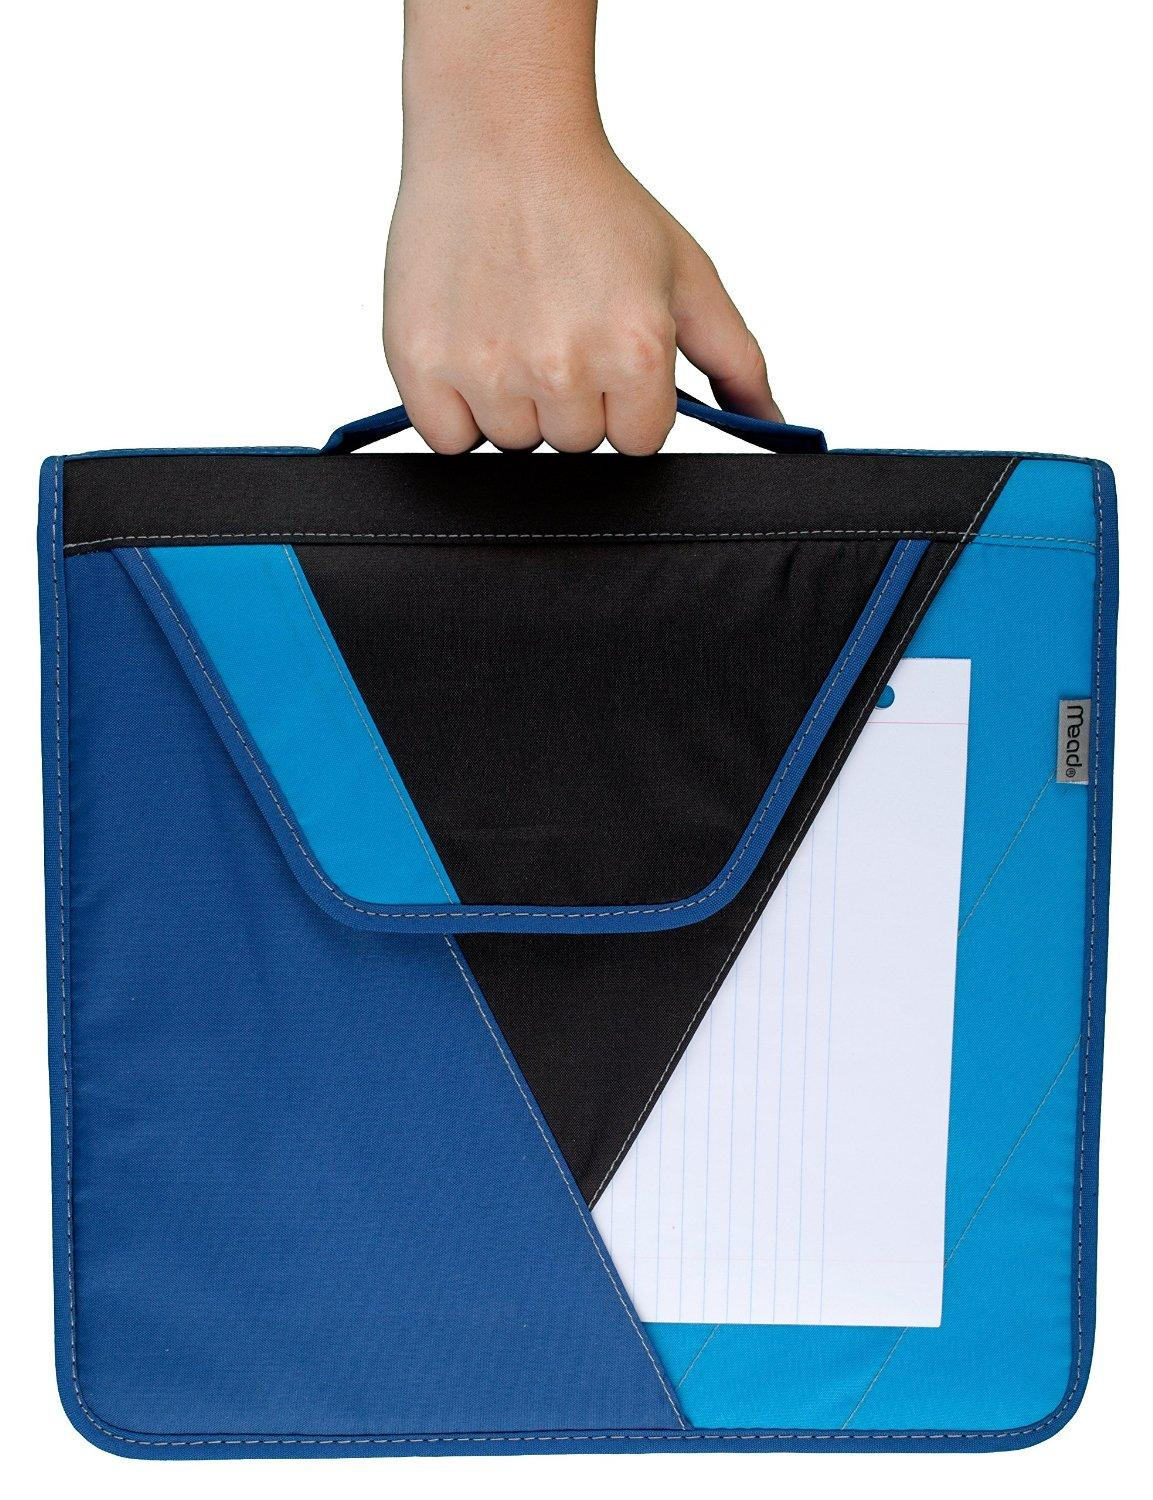 Mead 2 inch zipper binder with handle includes interior and exterior pockets red for Trapper keeper 2 sewn binder with exterior storage